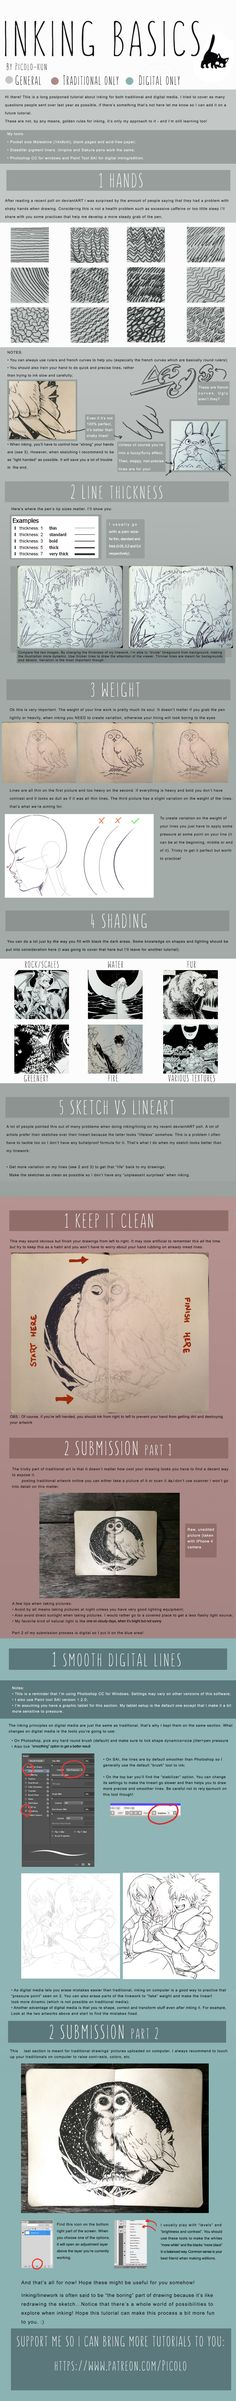 Inking Tutorial by Picolo-kun drawing illustration cartoon comic book manga anime resource tool how to tutorial instructions | Create your own roleplaying game material w/ RPG Bard: www.rpgbard.com | Writing inspiration for Dungeons and Dragons DND D&D Pathfinder PFRPG Warhammer 40k Star Wars Shadowrun Call of Cthulhu Lord of the Rings LoTR + d20 fantasy science fiction scifi horror design | Not Trusty Sword art: click artwork for source